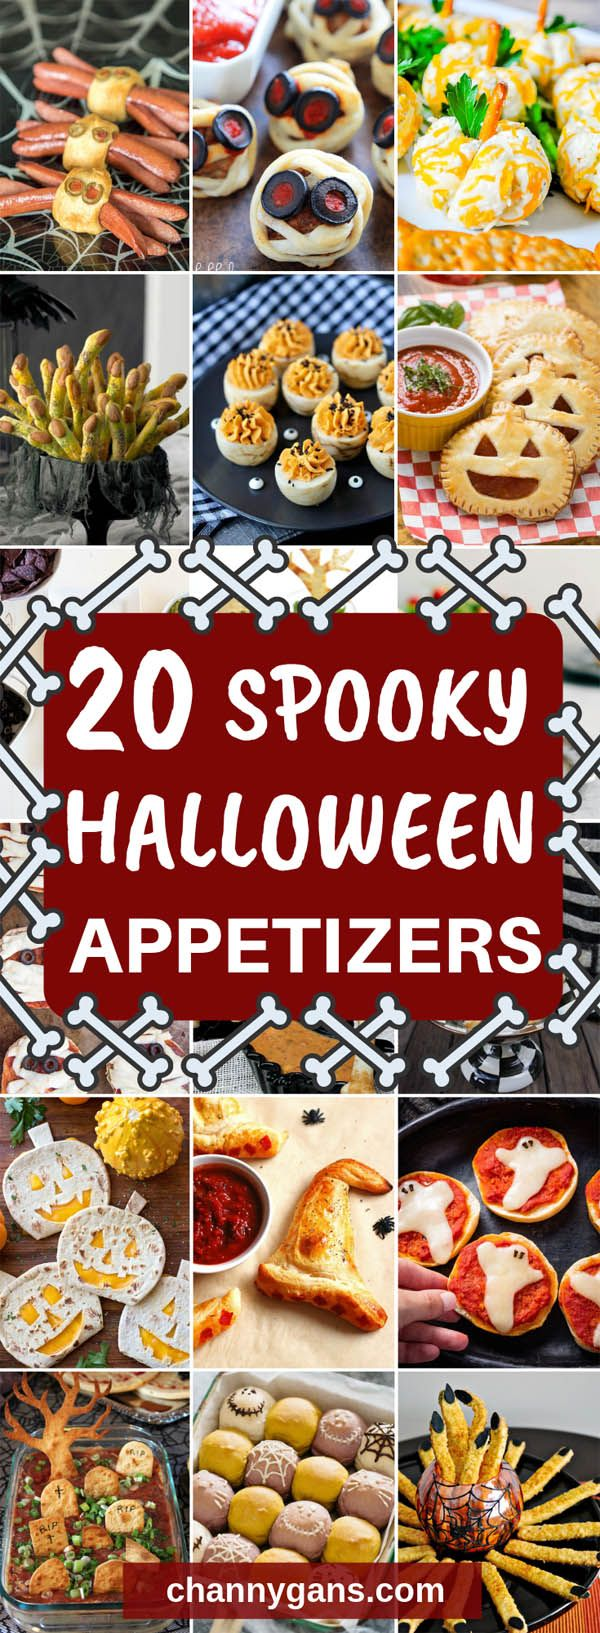 20 Halloween Party Appetizers And Snack Ideas #appetizersforparty